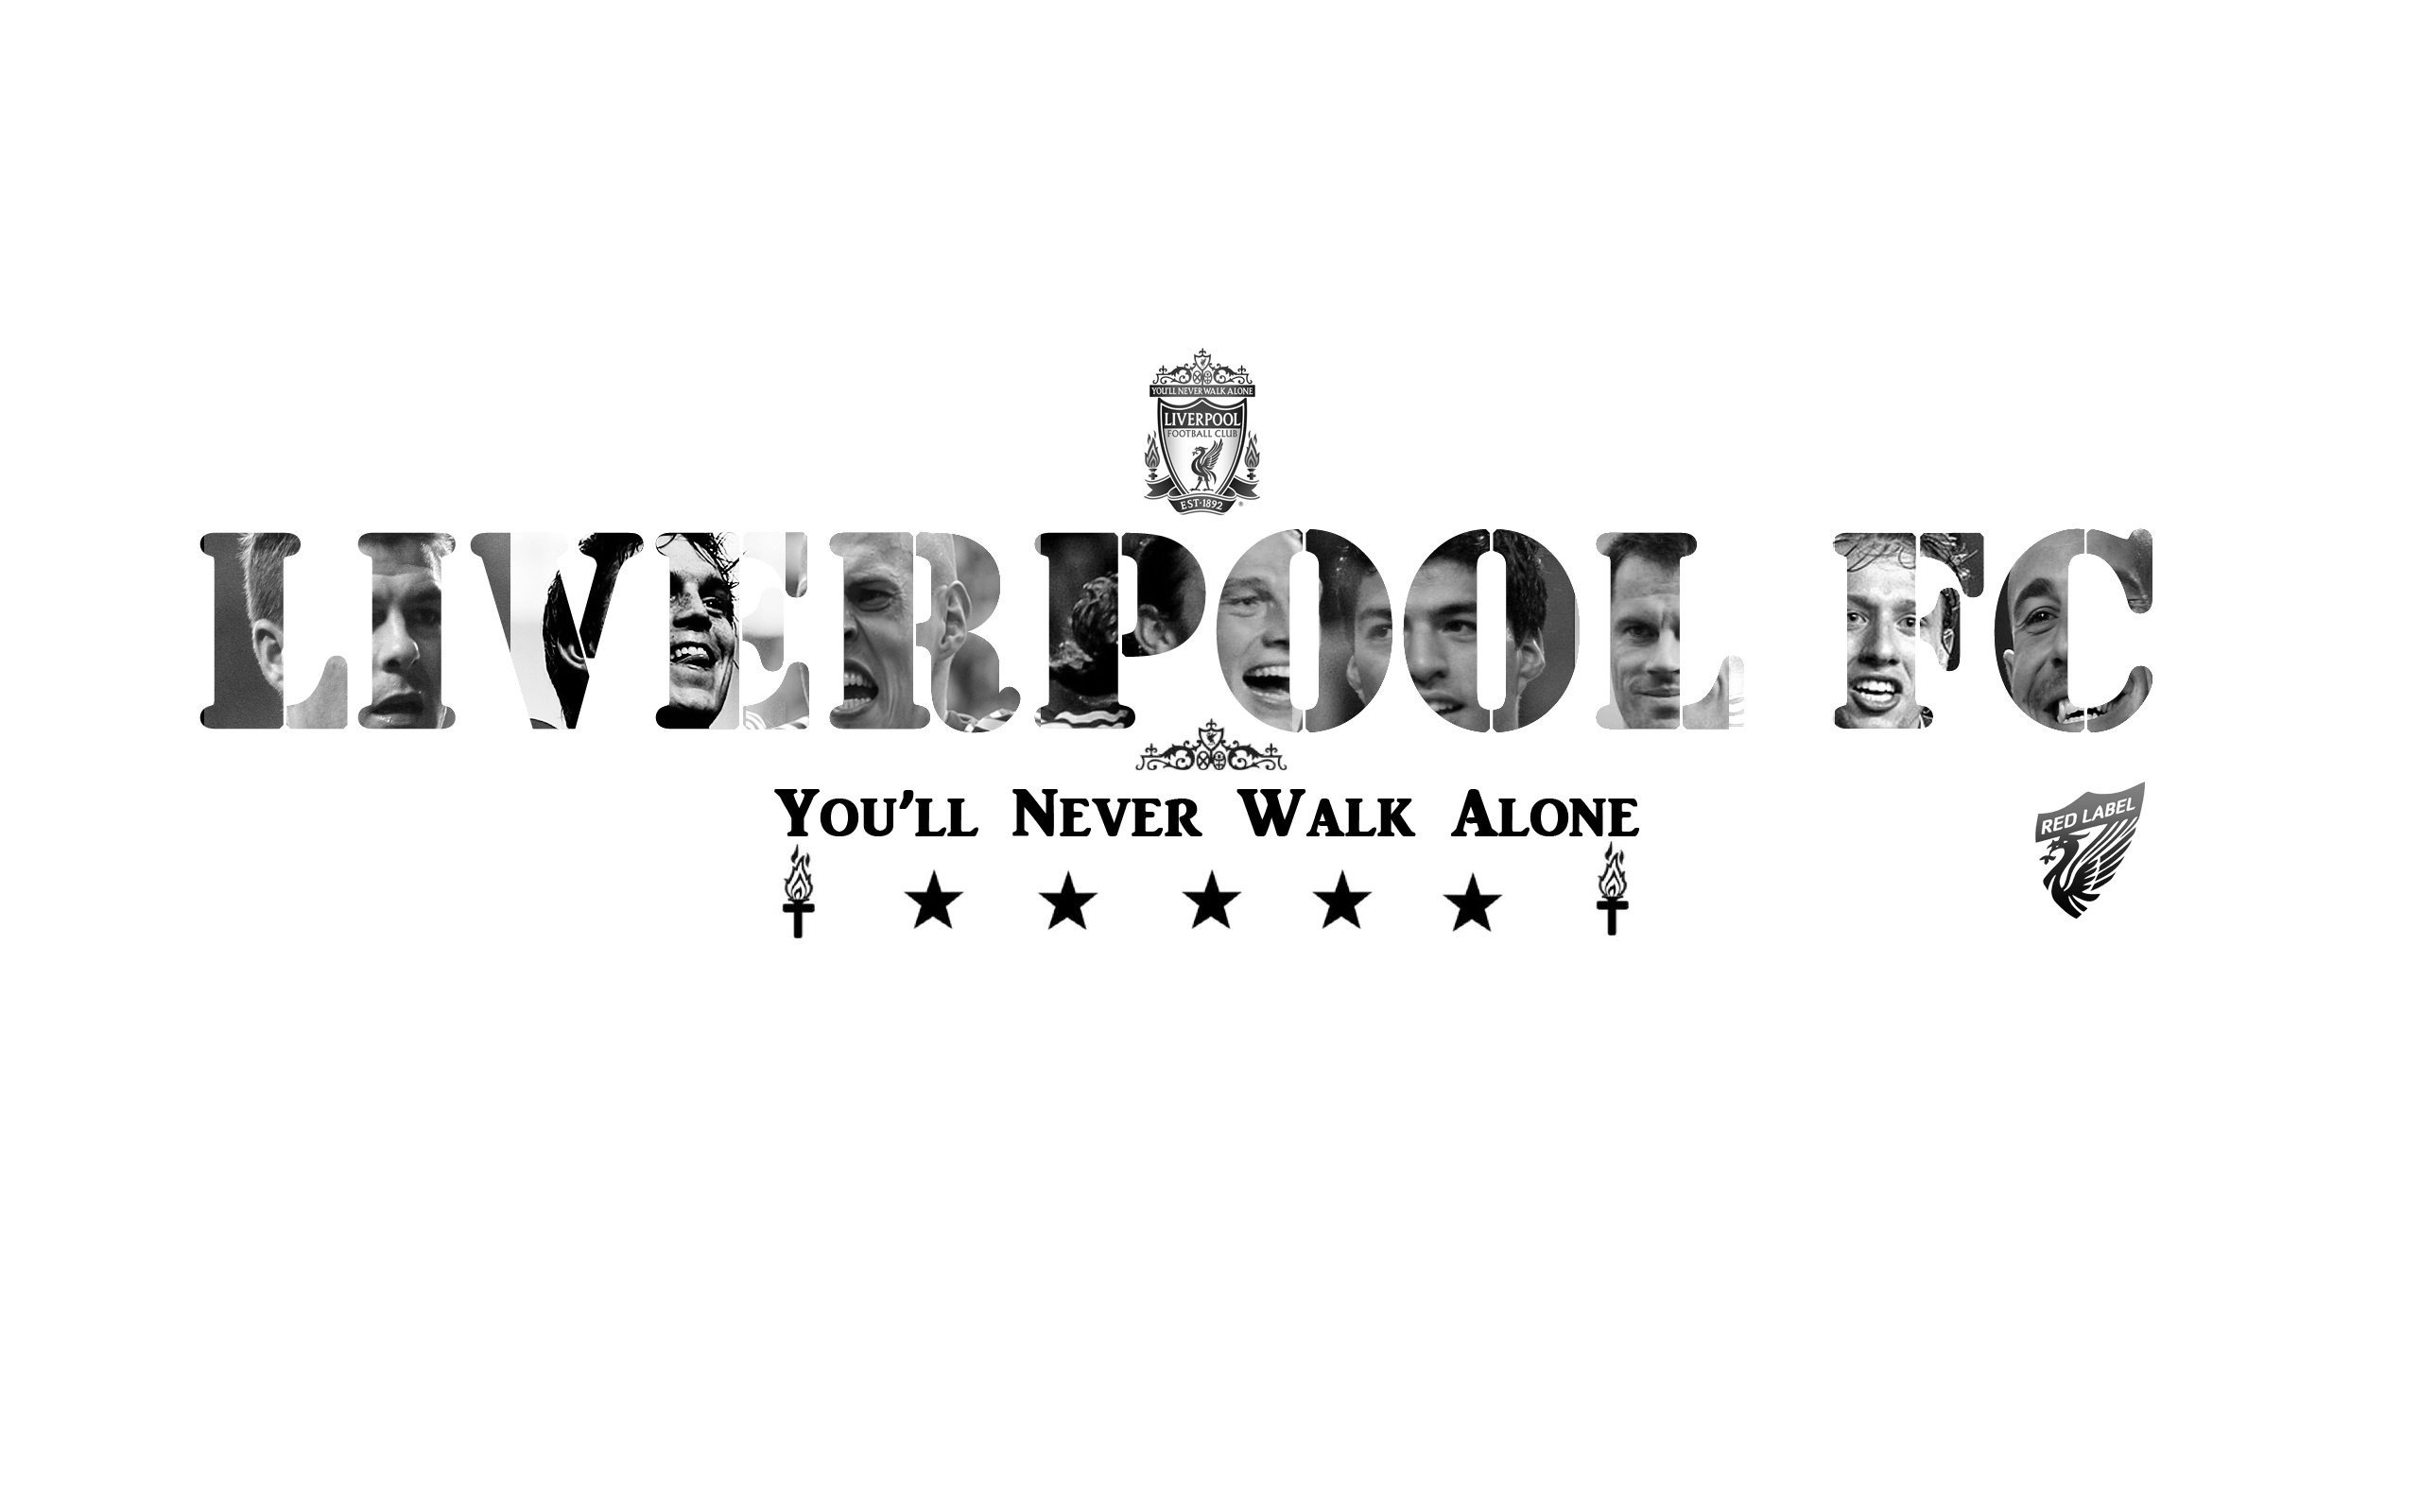 Liverpool F C Wallpapers Hd For Desktop Backgrounds